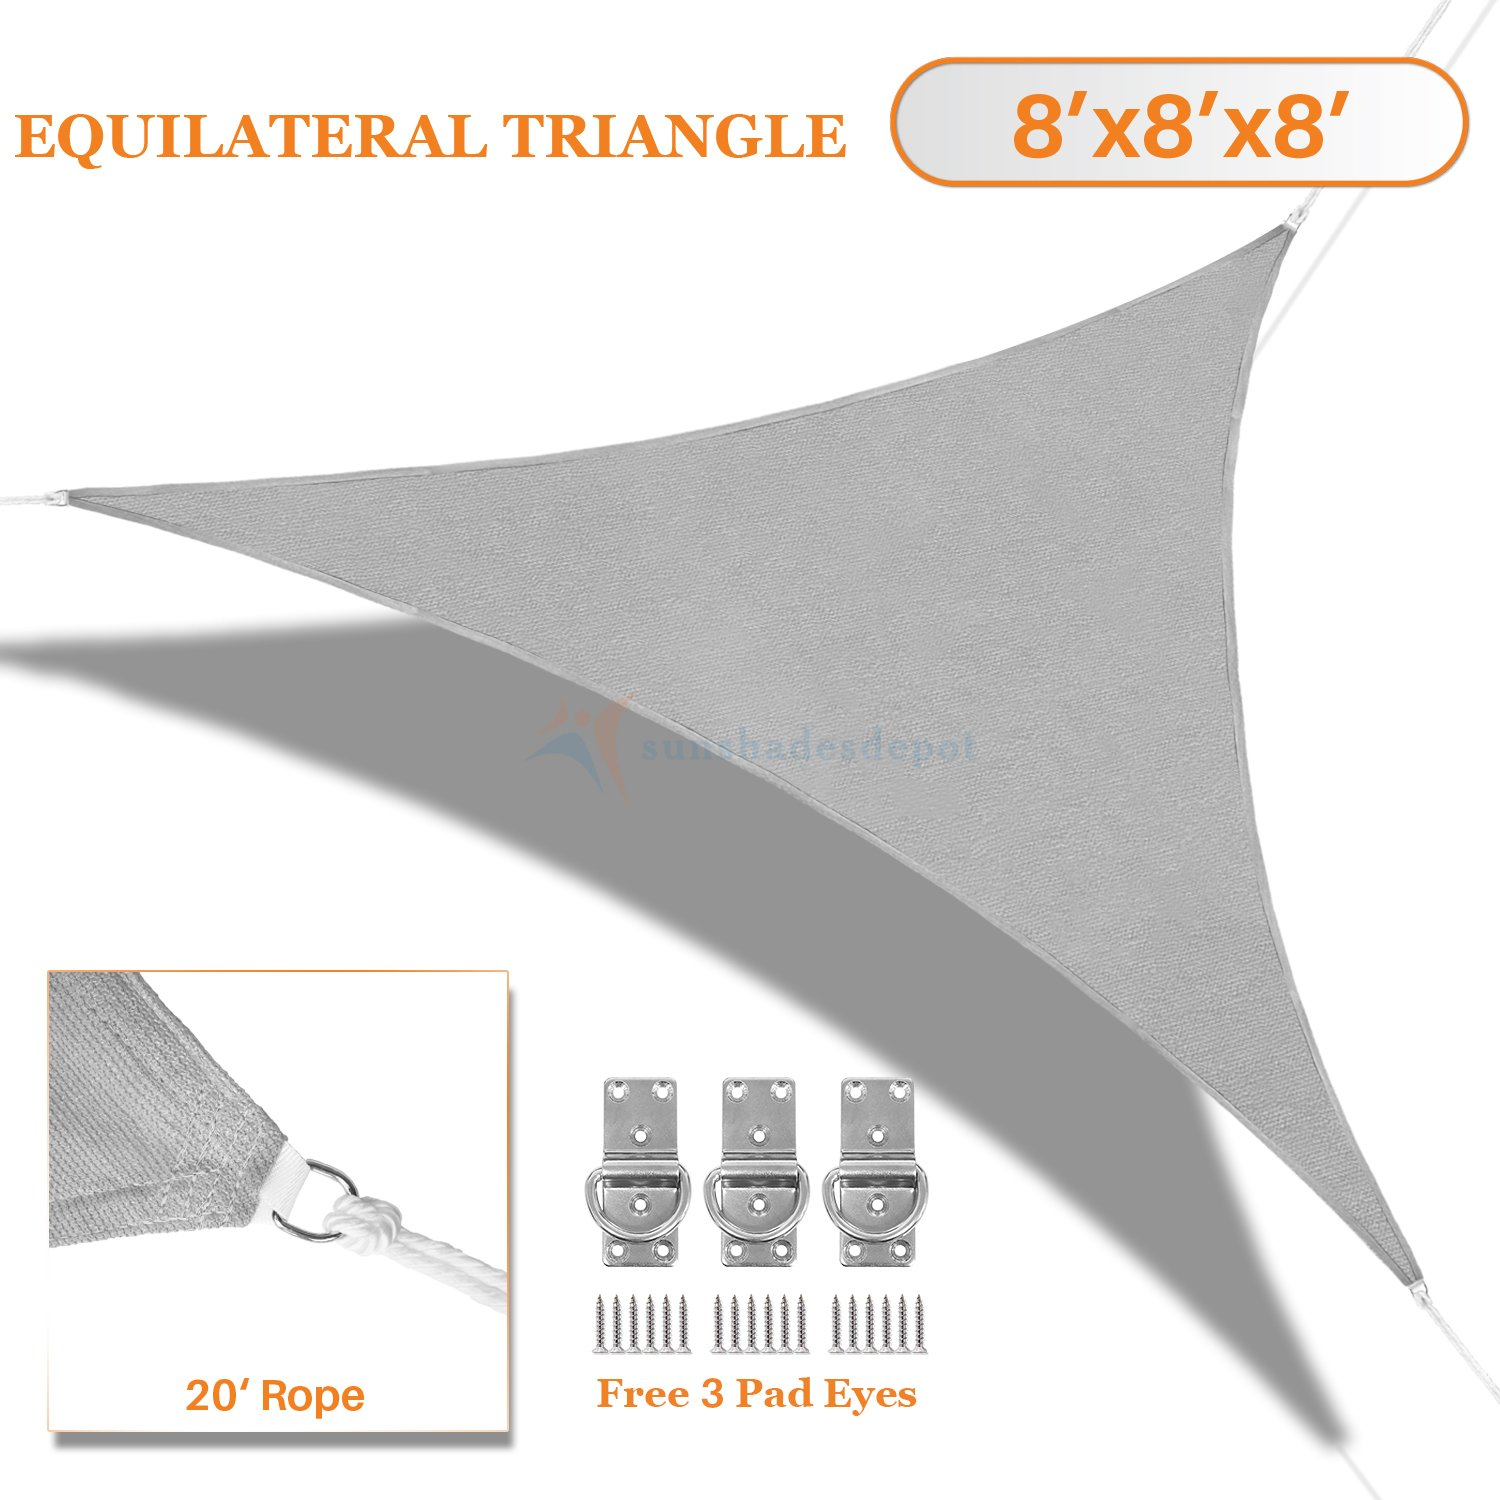 Sunshades Depot 8' x 8' x 8' Light Grey Sun Shade Sail 180 GSM Equilateral Triangle Permeable Canopy Custom Commercial Standard